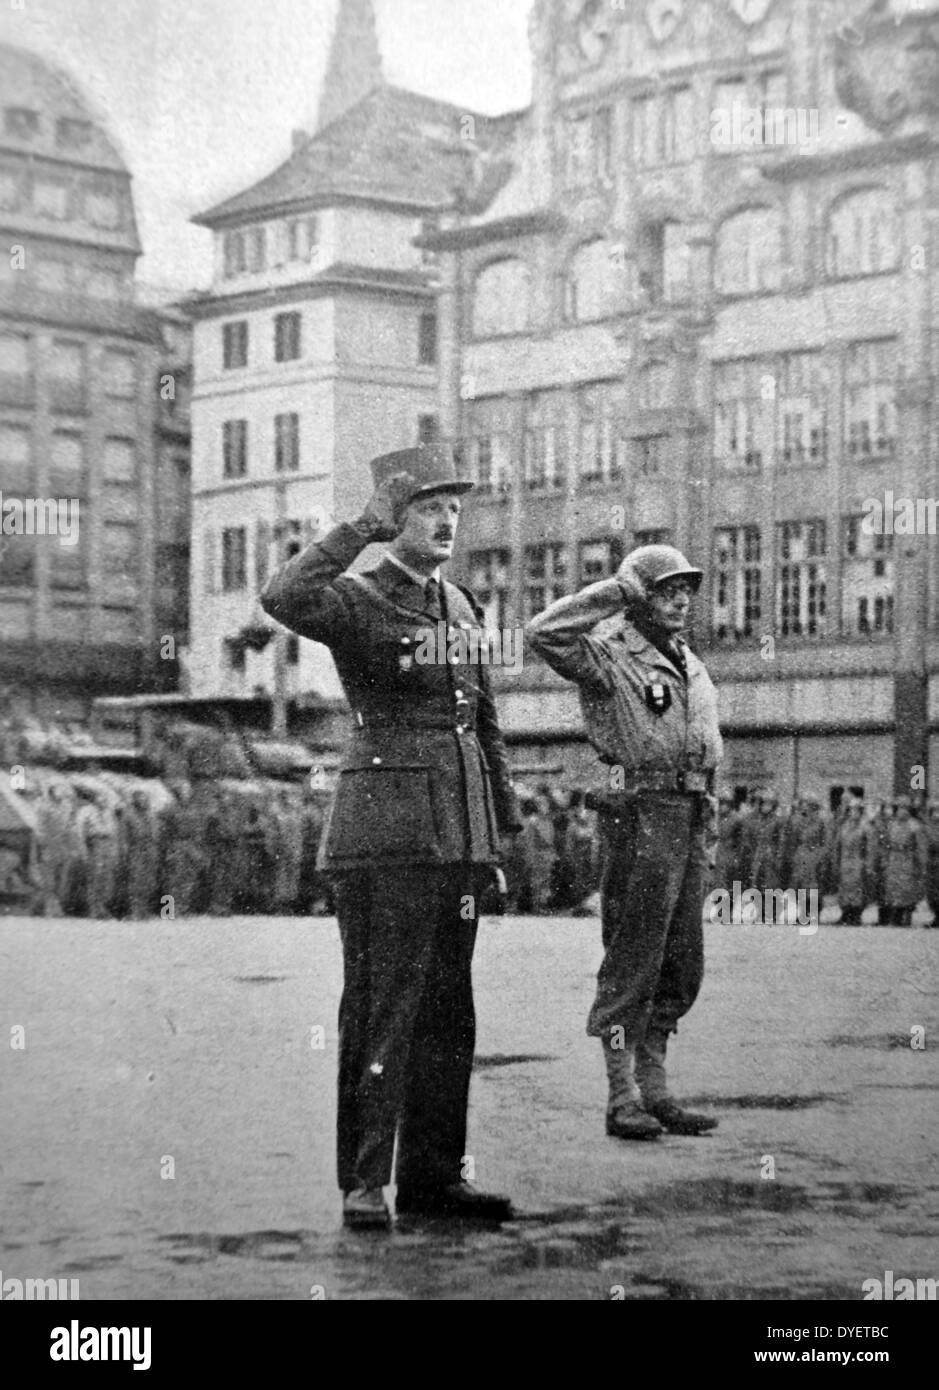 General Leclerc salutes at a parade in central strasburg following the town's liberation from German occupation in 1944 - Stock Image